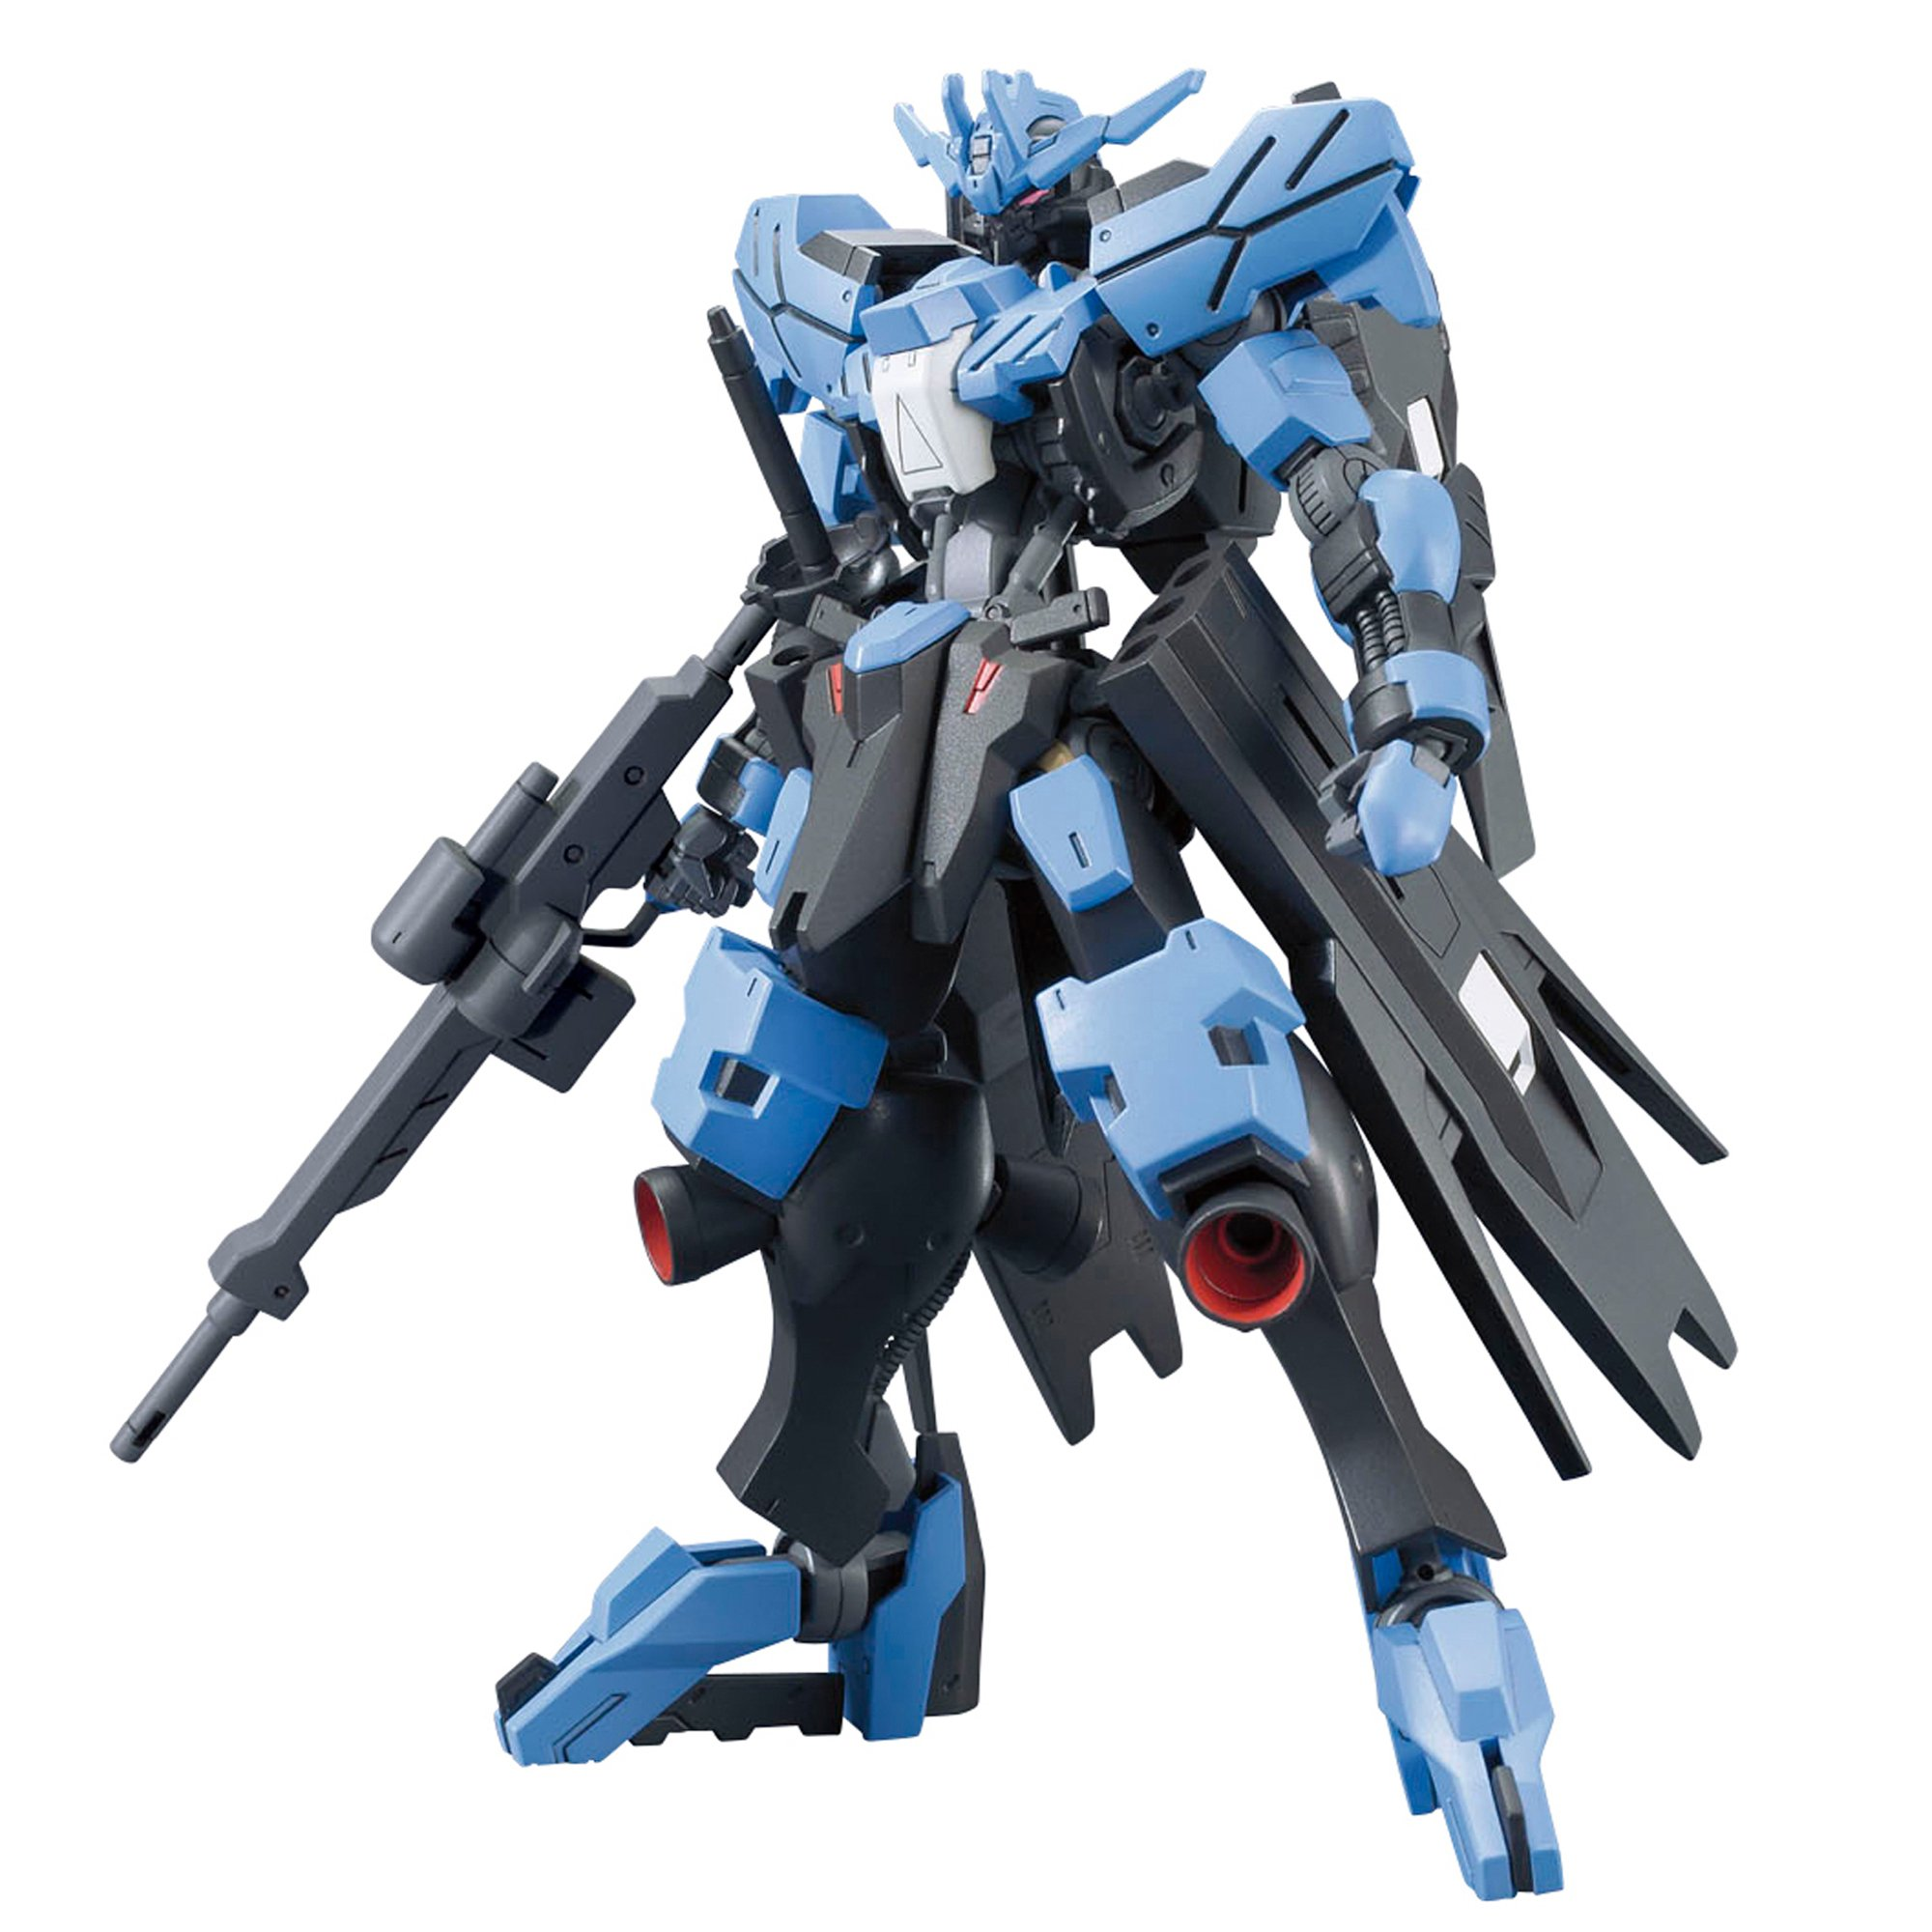 Bandai Hobby HG IBO Gundam Vidar ''IBO: 2nd Season'' Building Kit (1/144 Scale)